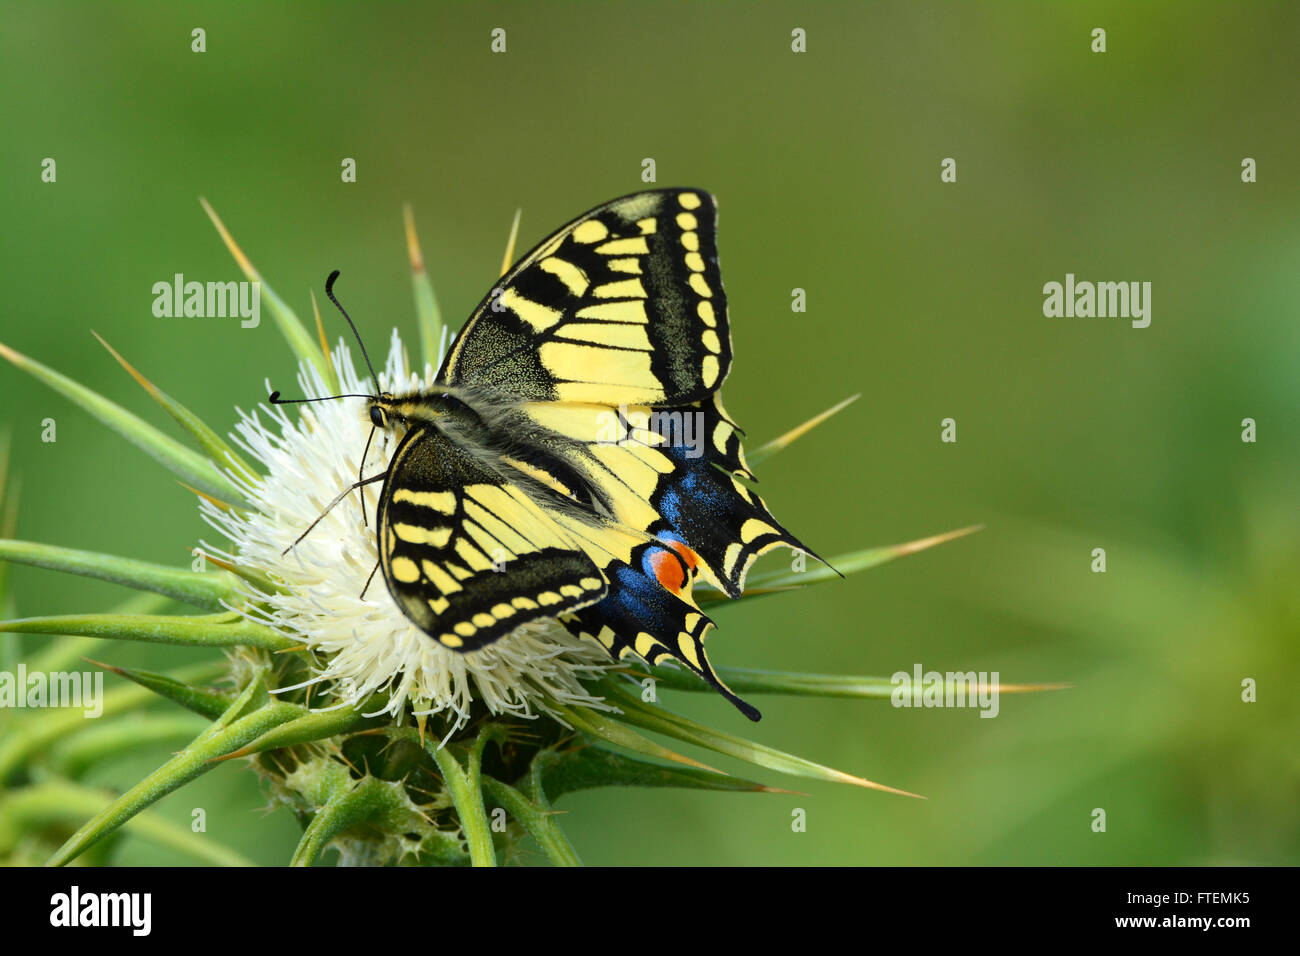 Swallowtail butterfly - Papilio machaon - on a thorn flower Stock Photo